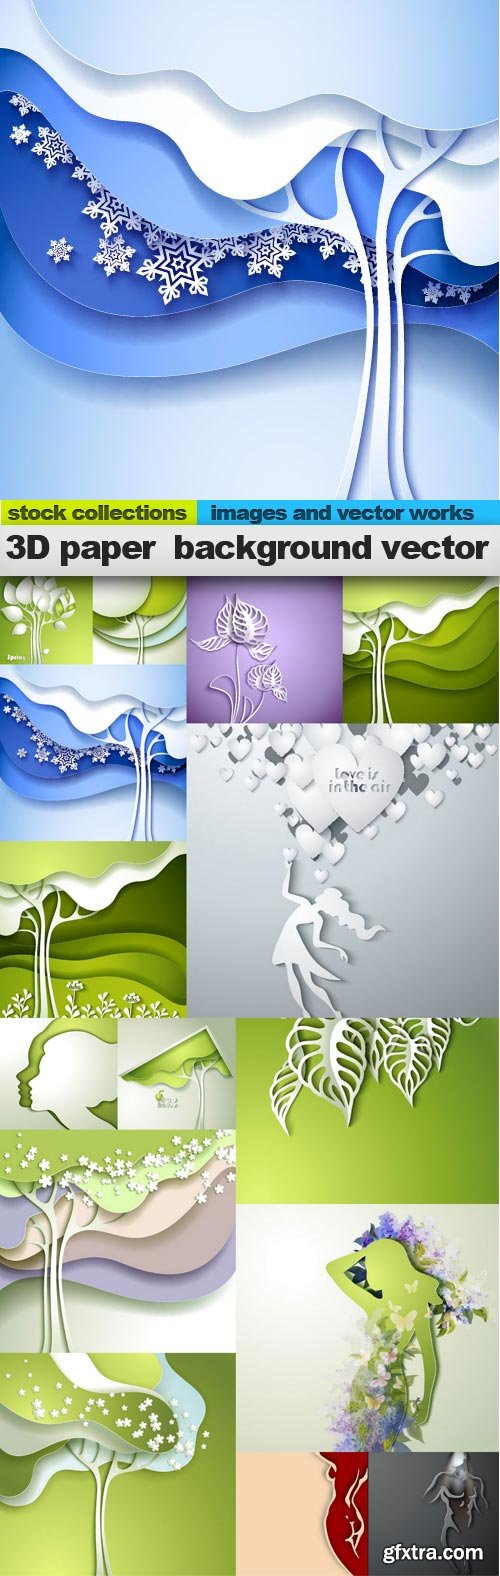 3D paper background vector, 15 x EPS